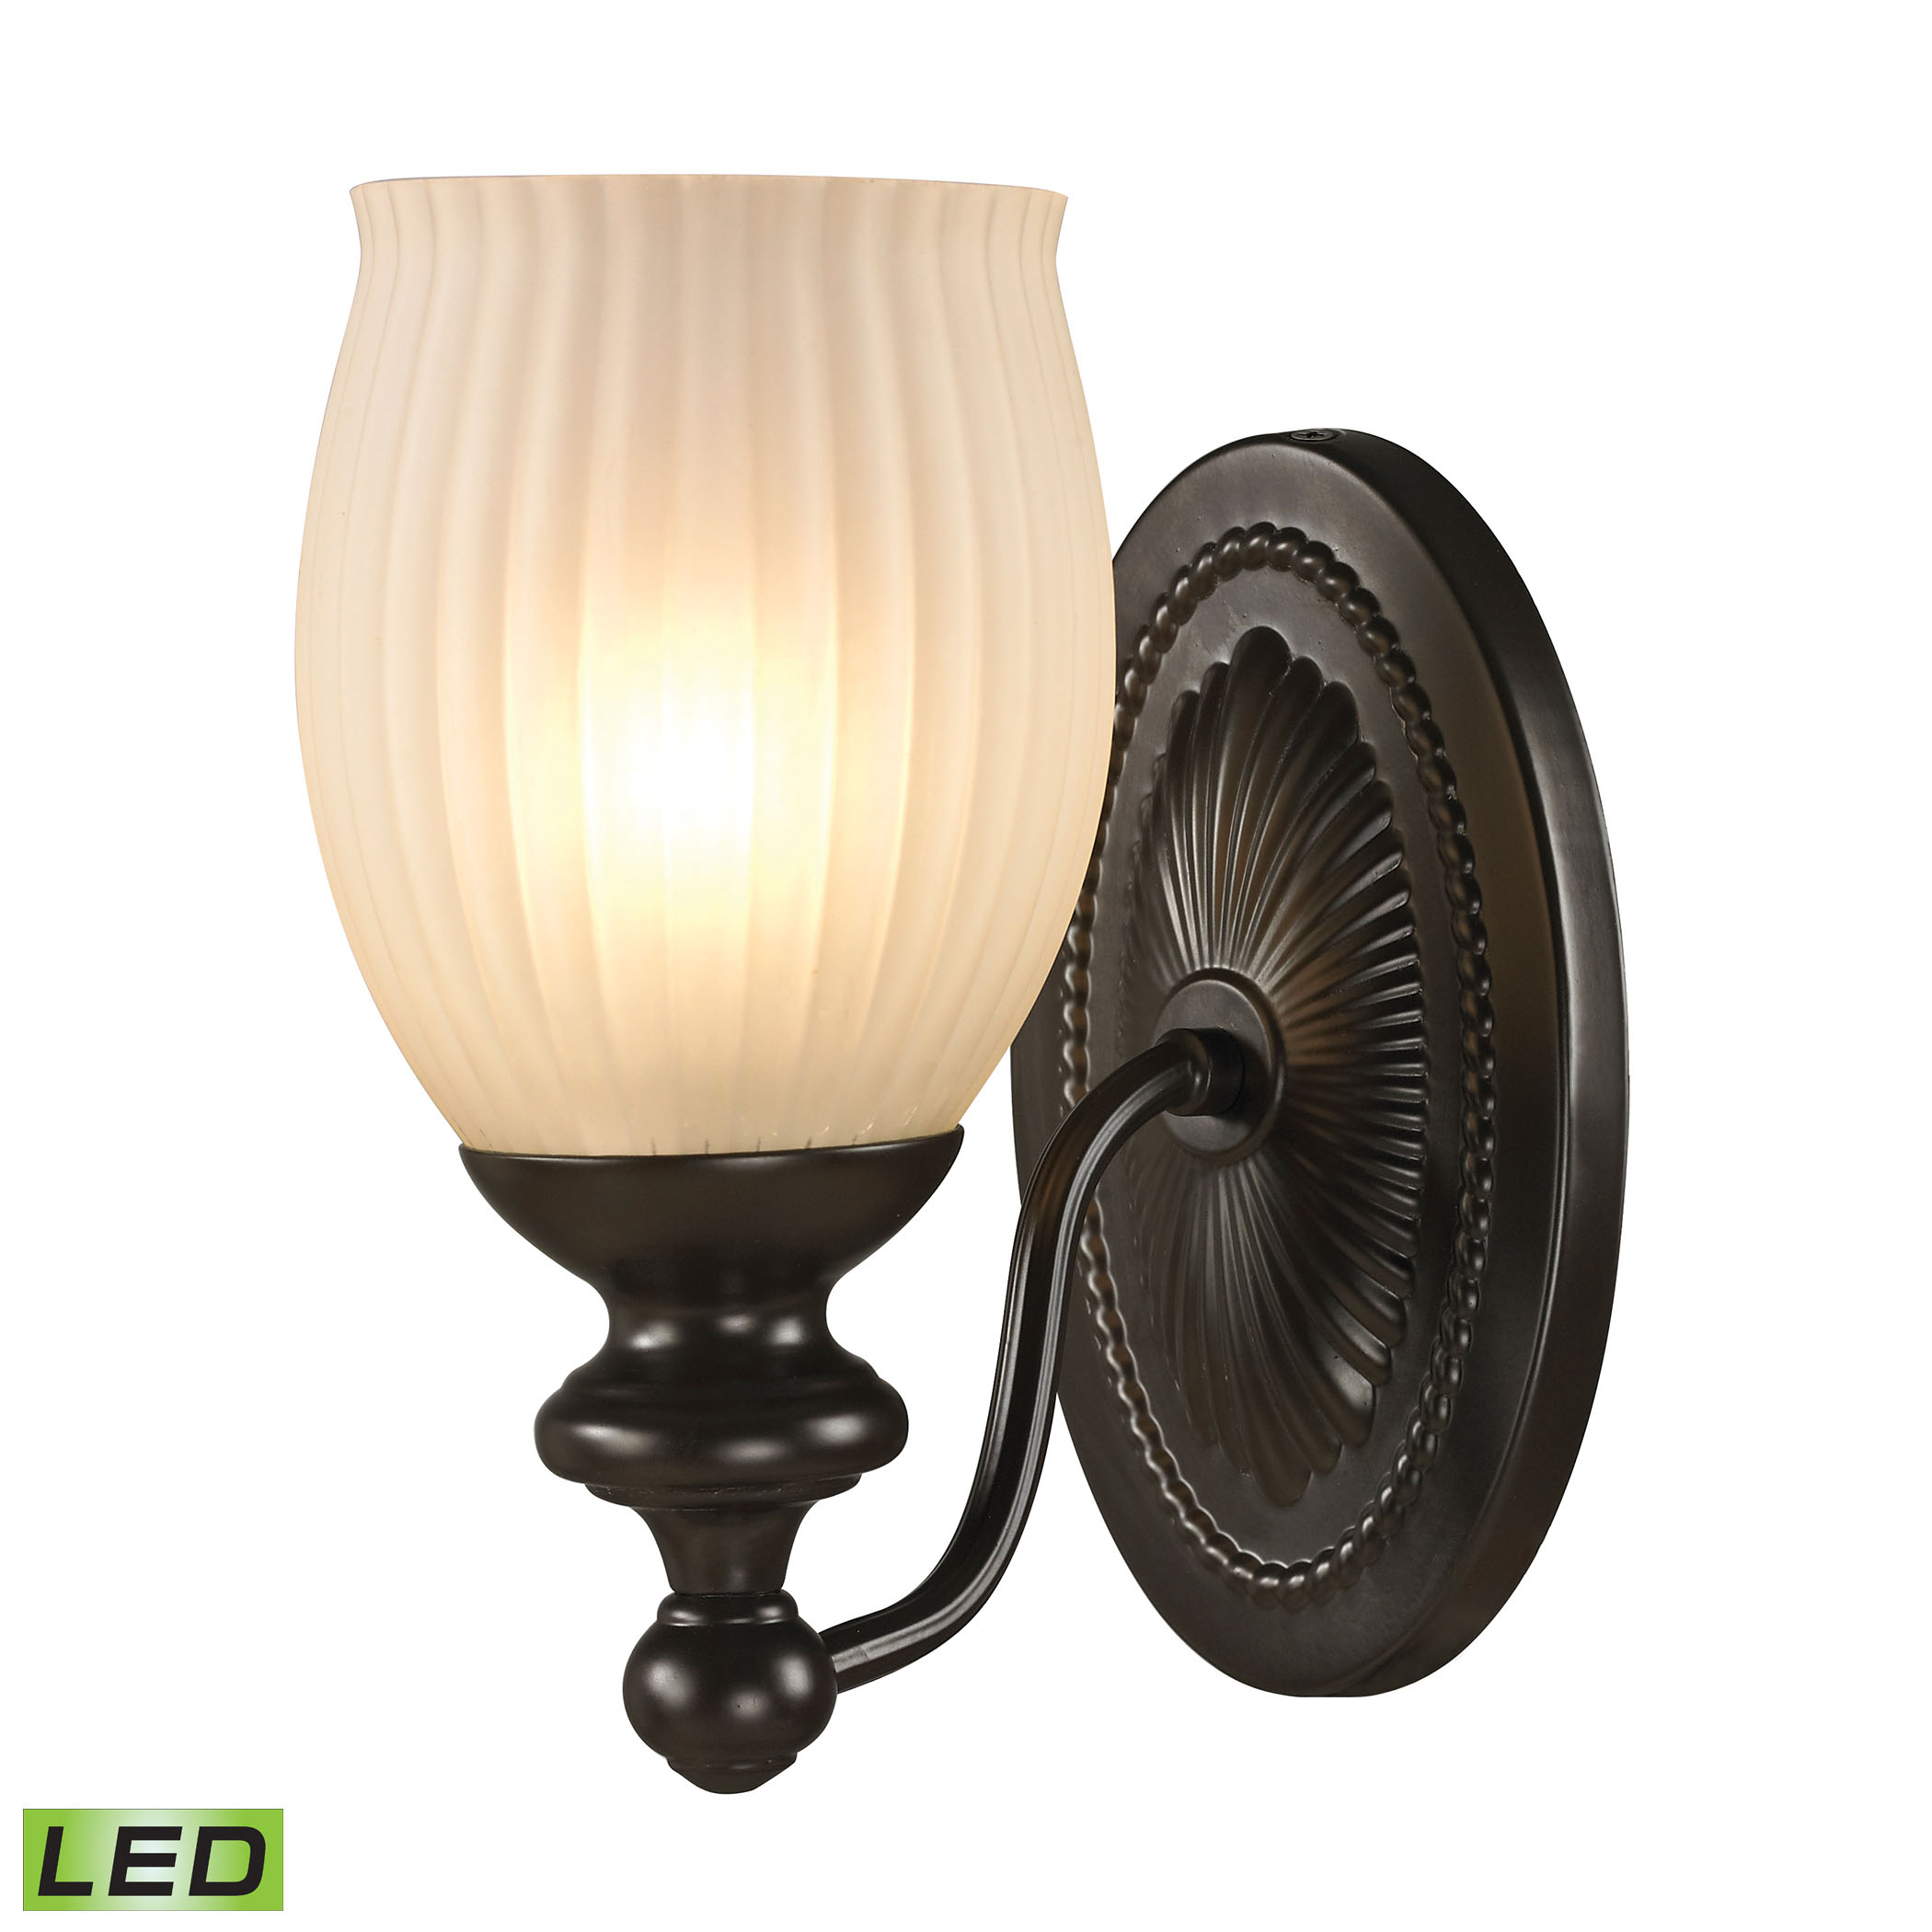 Park Ridge Collection 1 Light Bath in Oil Rubbed Bronze - LED Offering Up To 800 Lumens (60 Watt Equivalent)